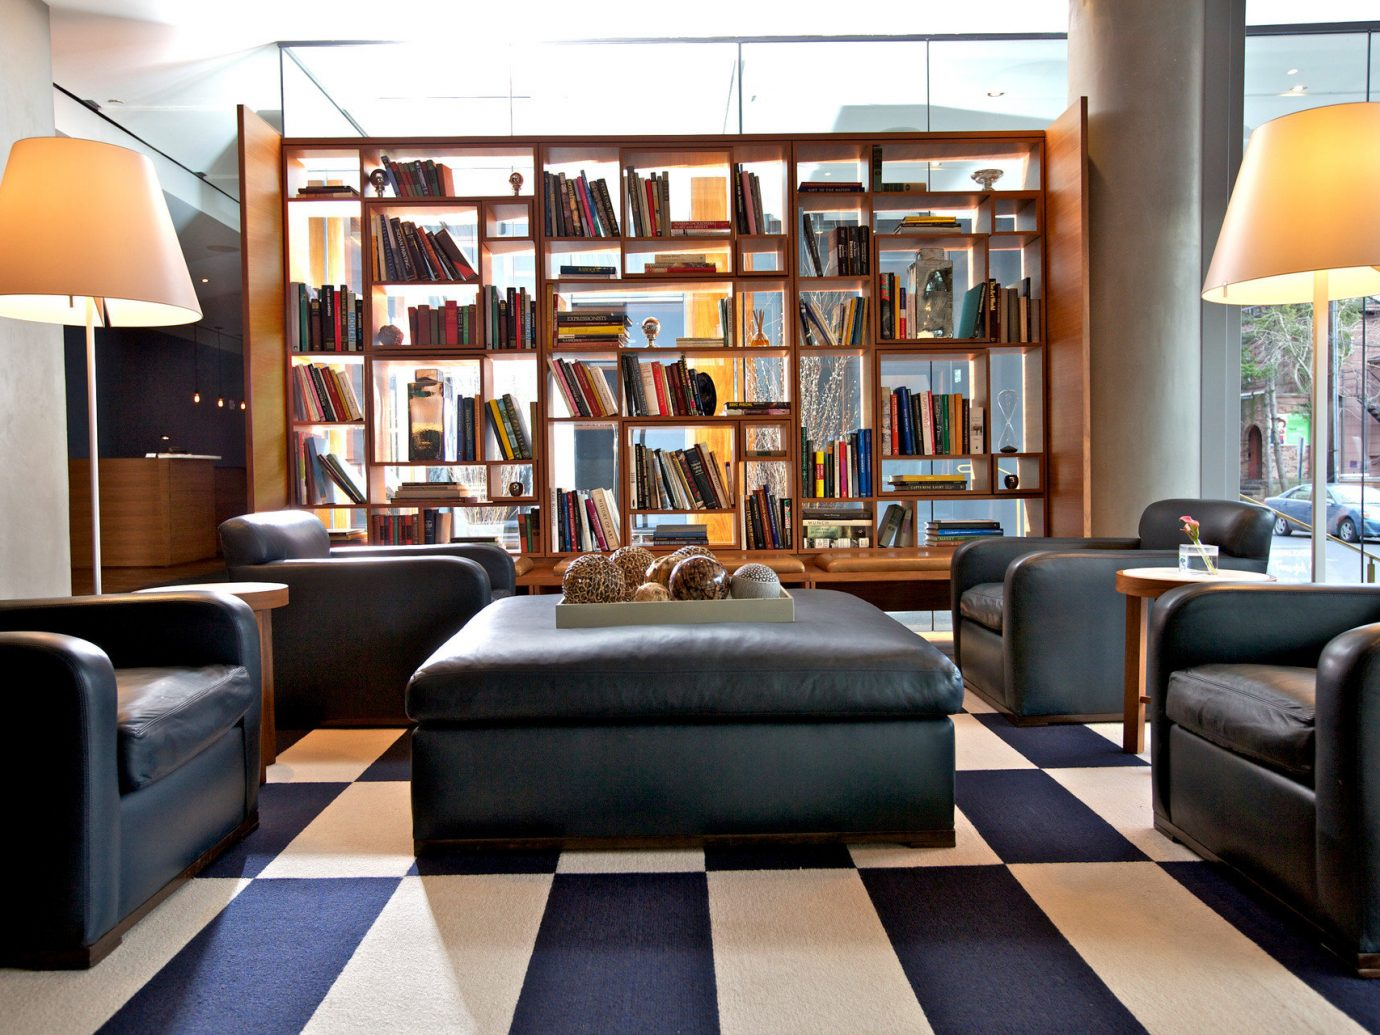 books Boutique charming cozy homey Hotels interior library living area living room Lounge quaint Style + Design indoor floor room Living property furniture interior design home Lobby Design real estate window covering area